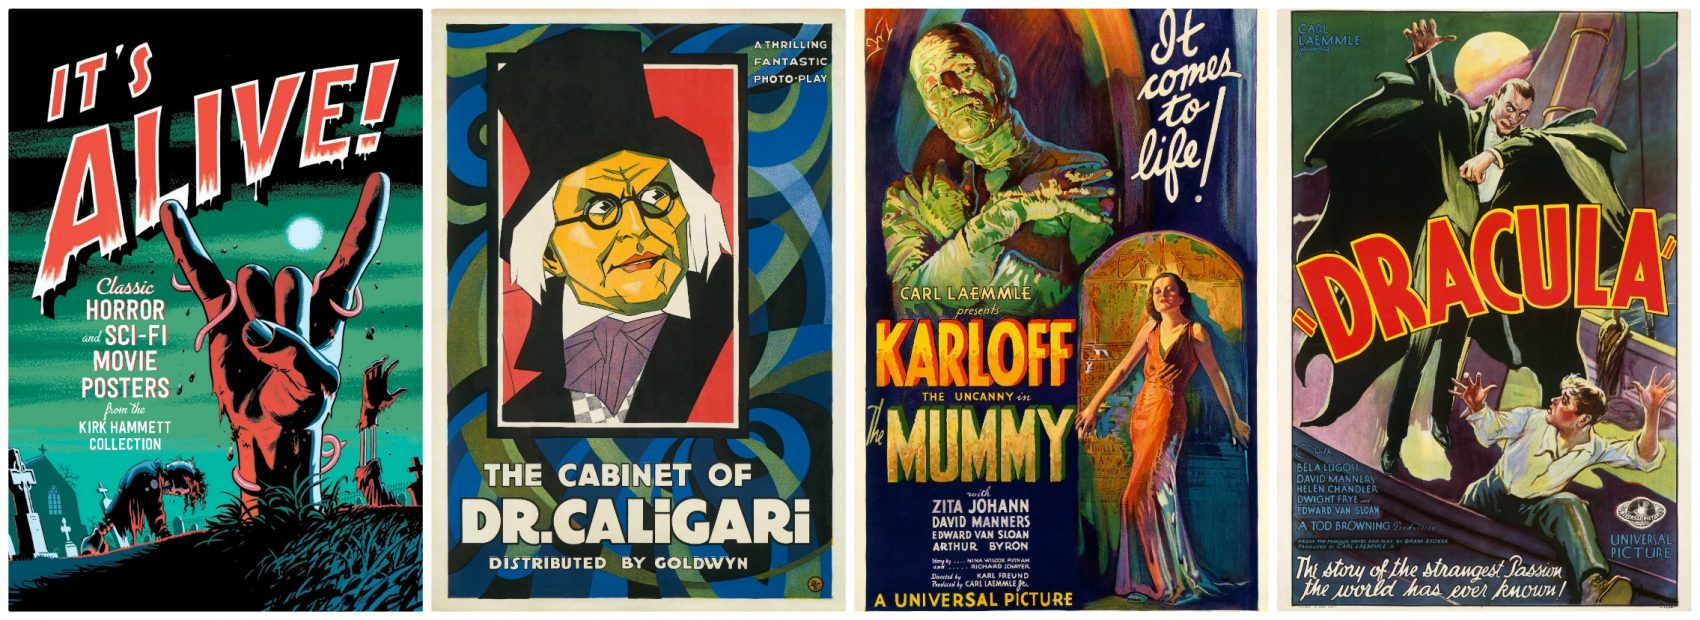 A few of the old movie posters on display at the PEM. (Courtesy Collection of Kirk Hammett)